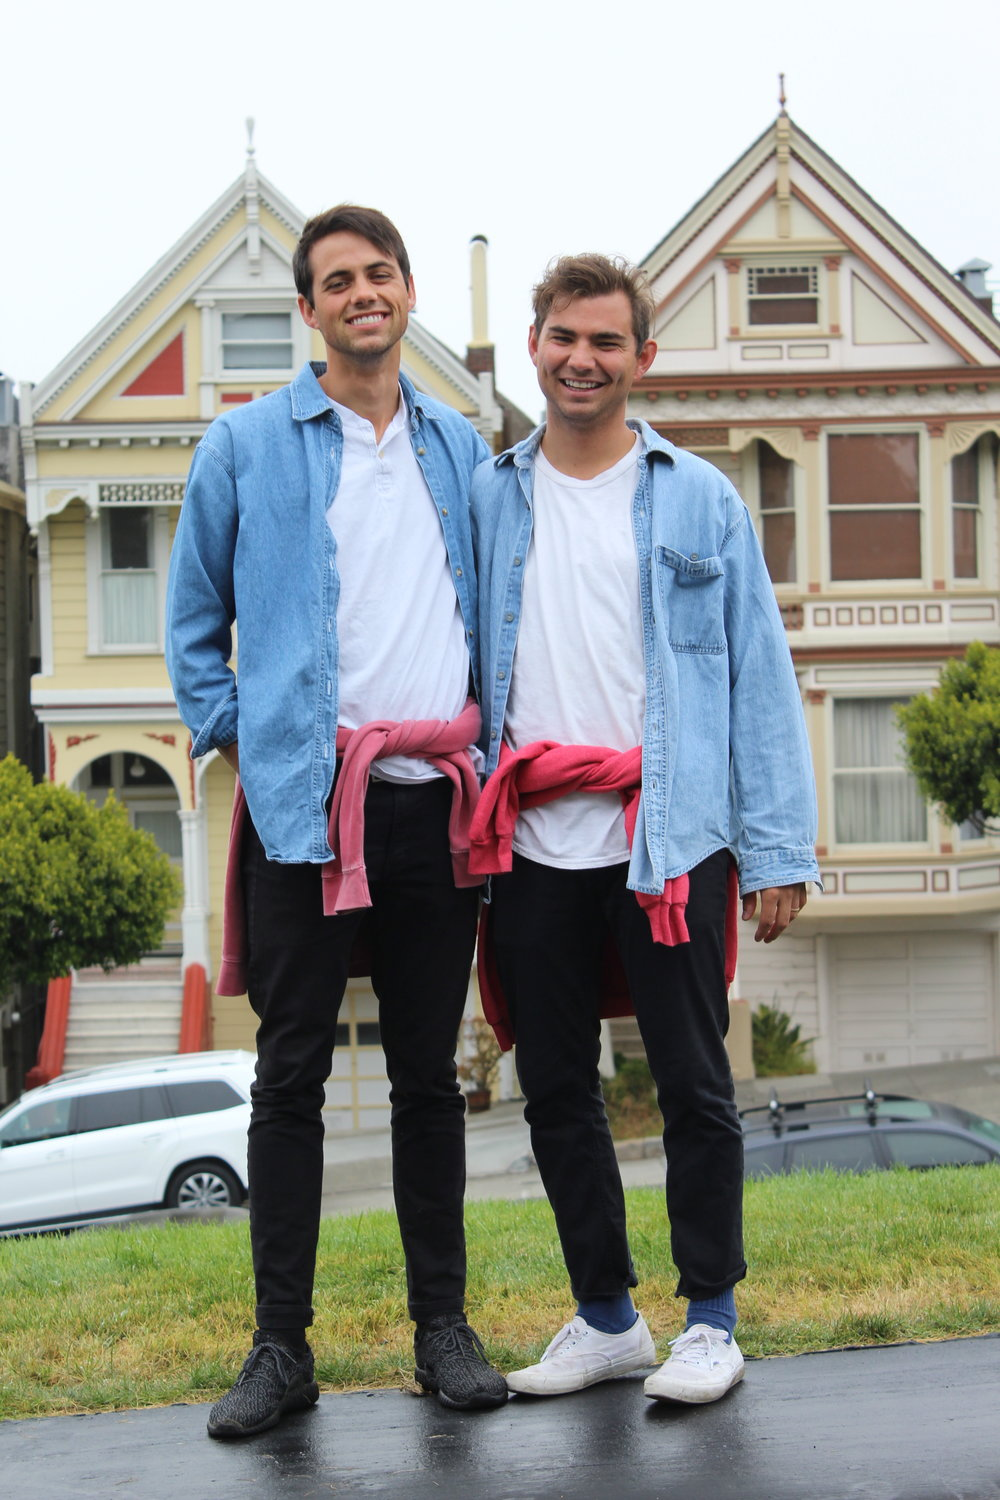 Cousins matching at the Painted Ladies.